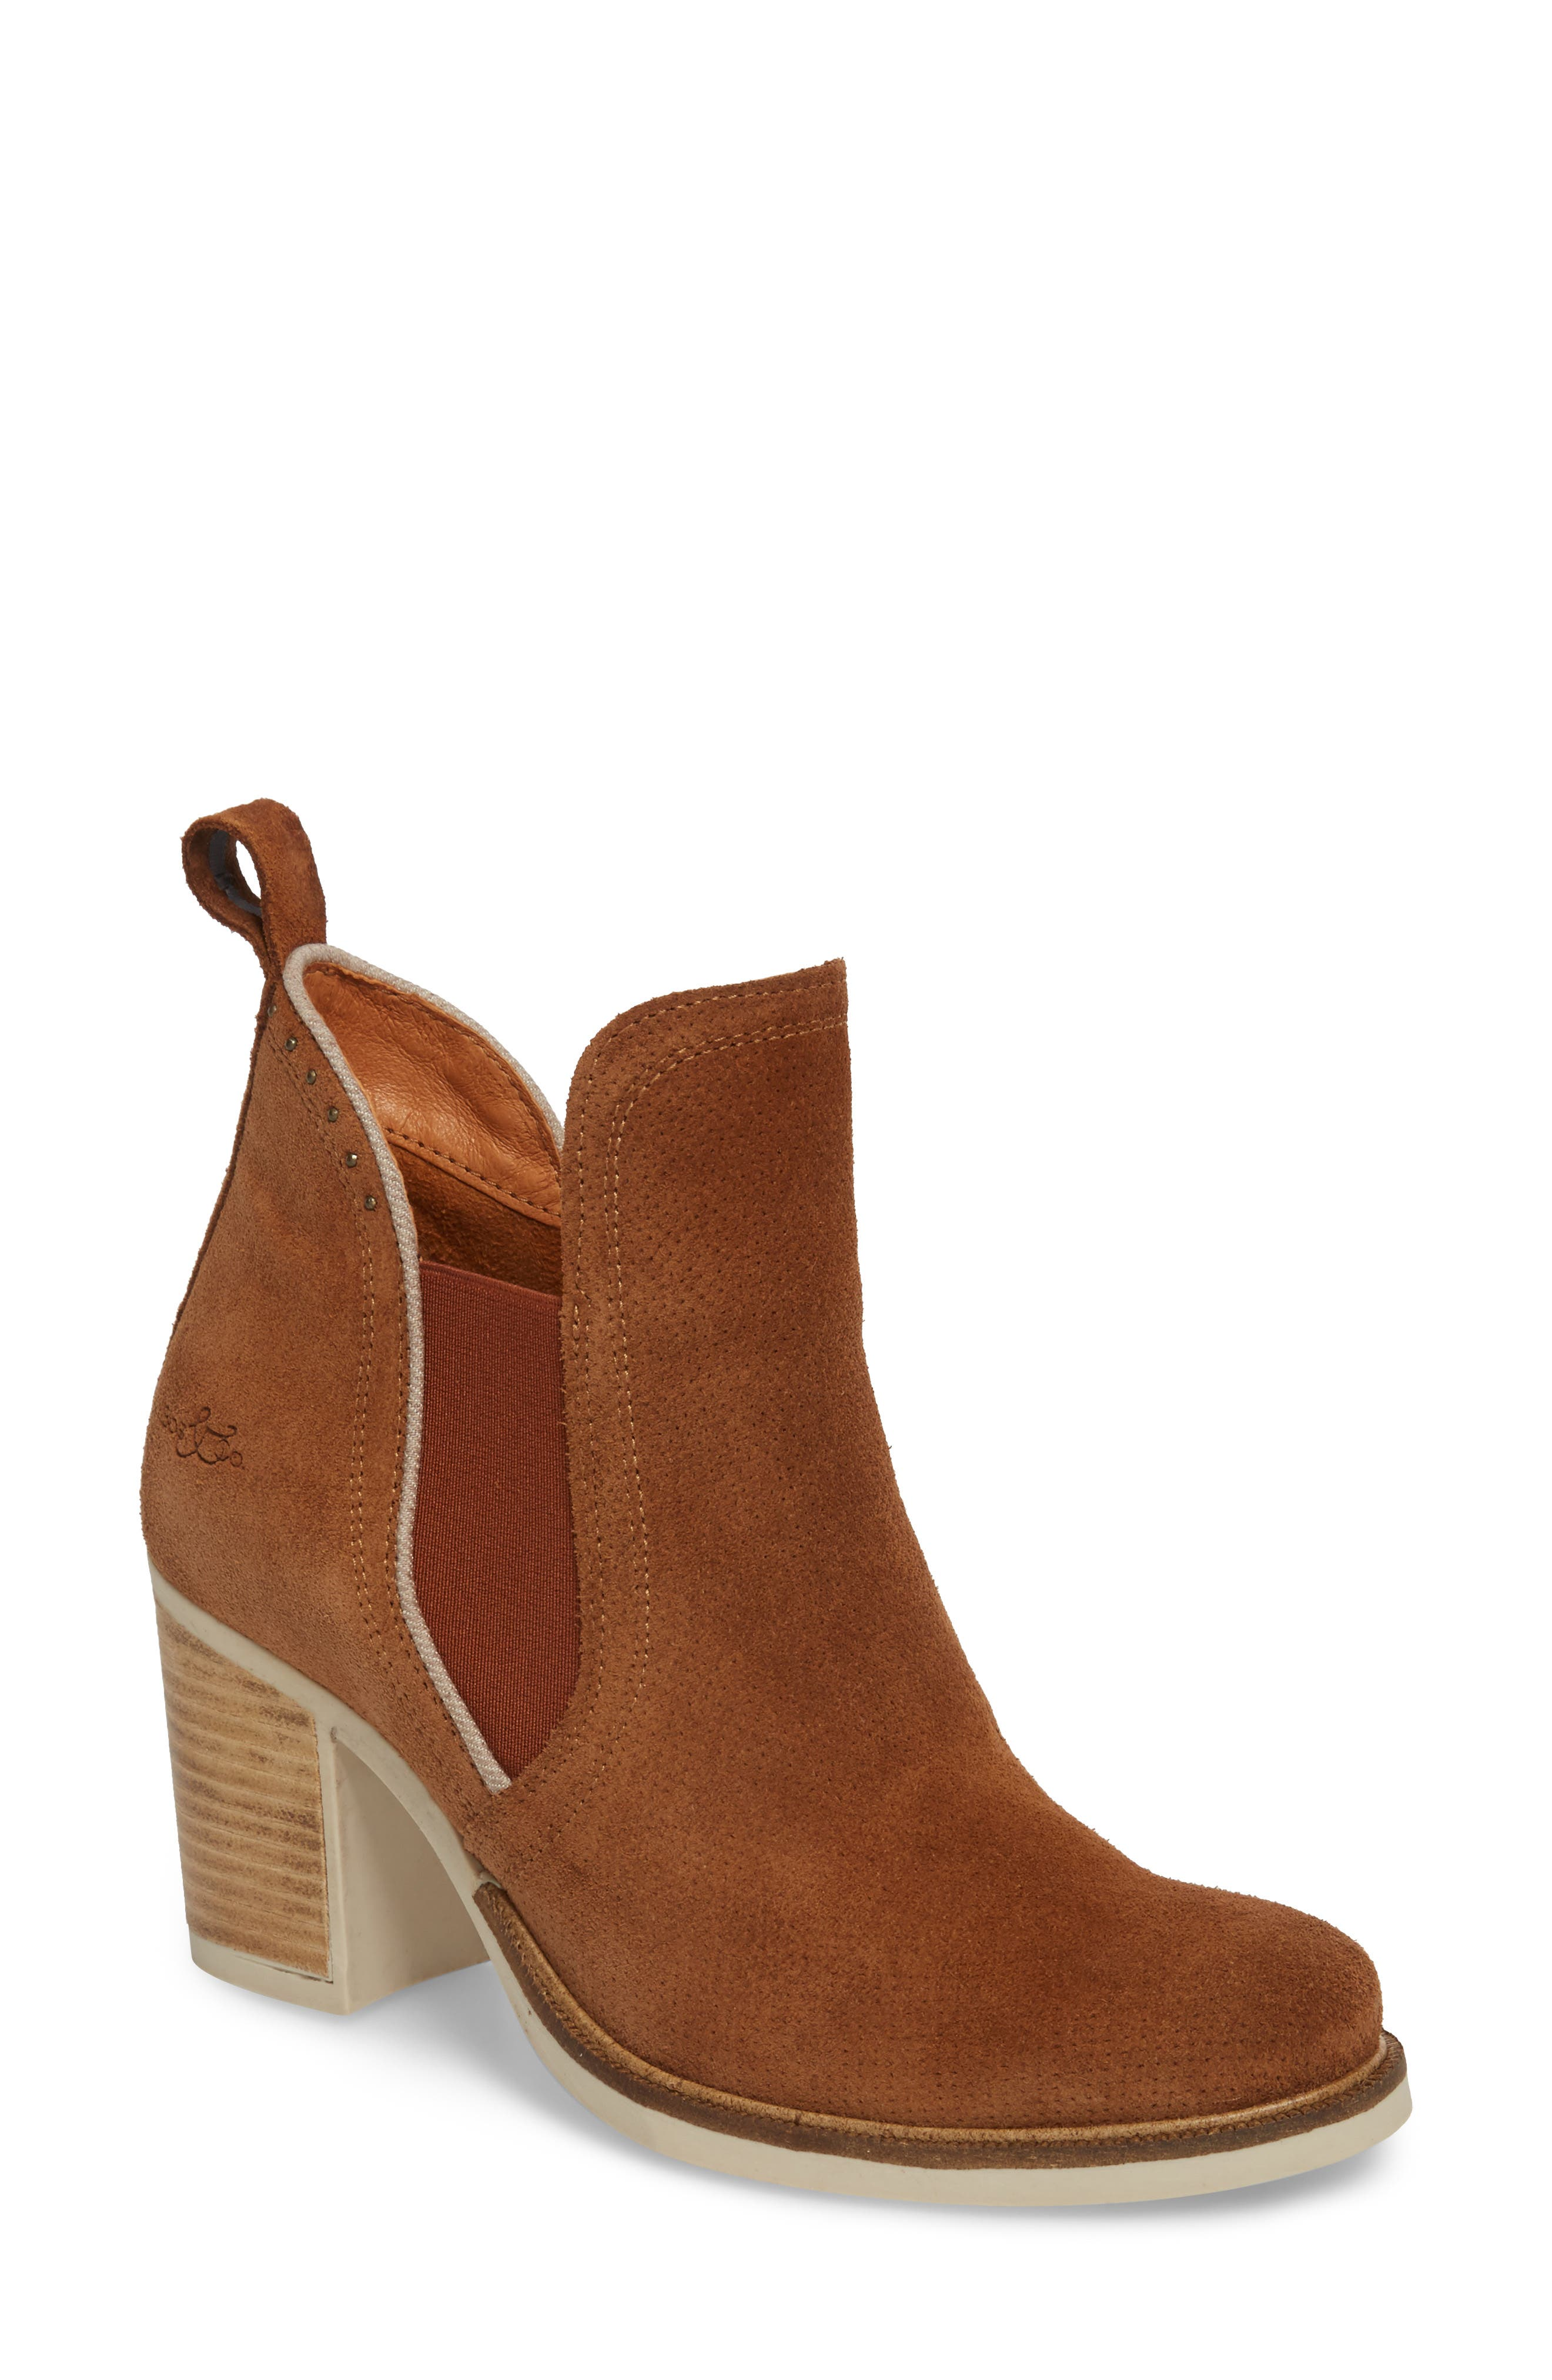 Breves Boot,                             Main thumbnail 1, color,                             WHISKY/ BEIGE SUEDE